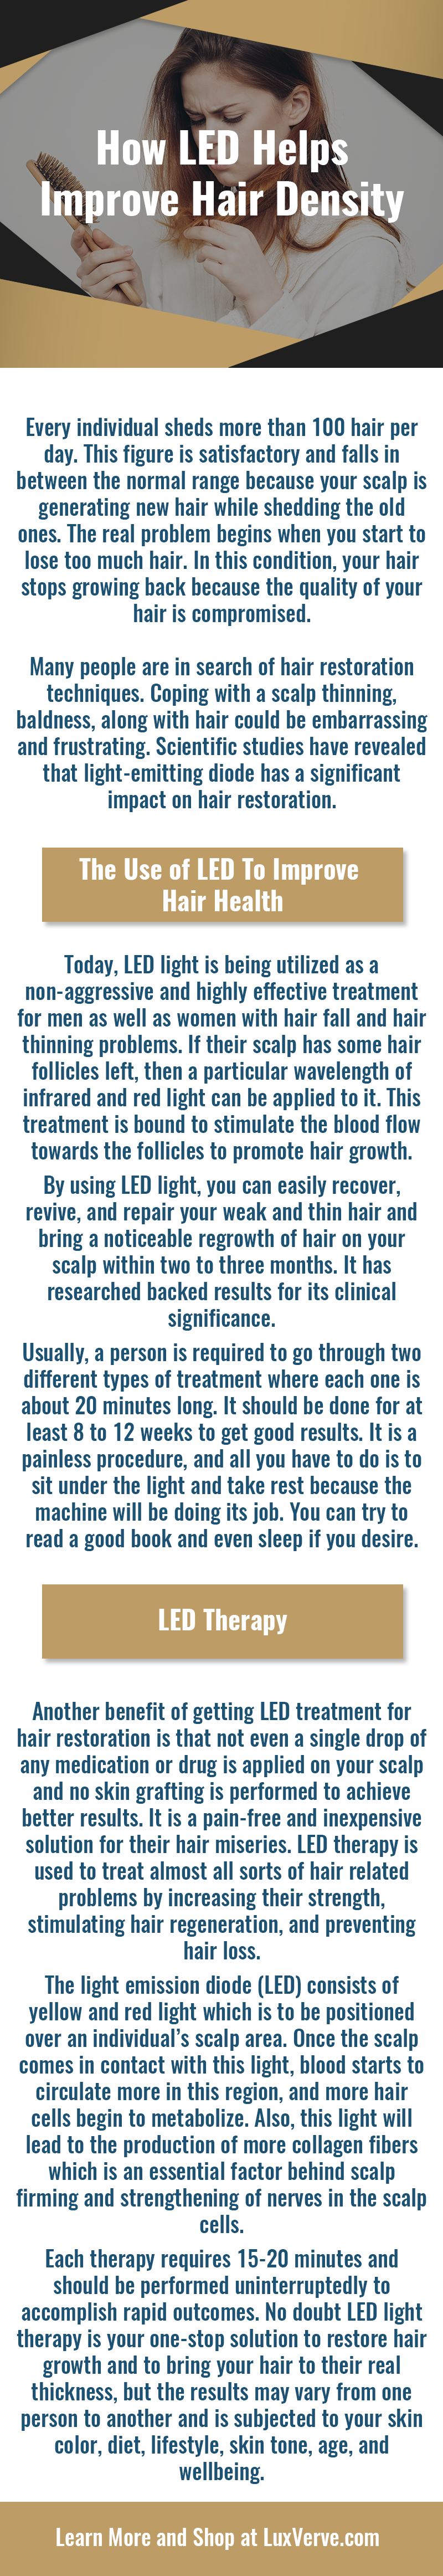 LED Laser Therapy for Hair Loss